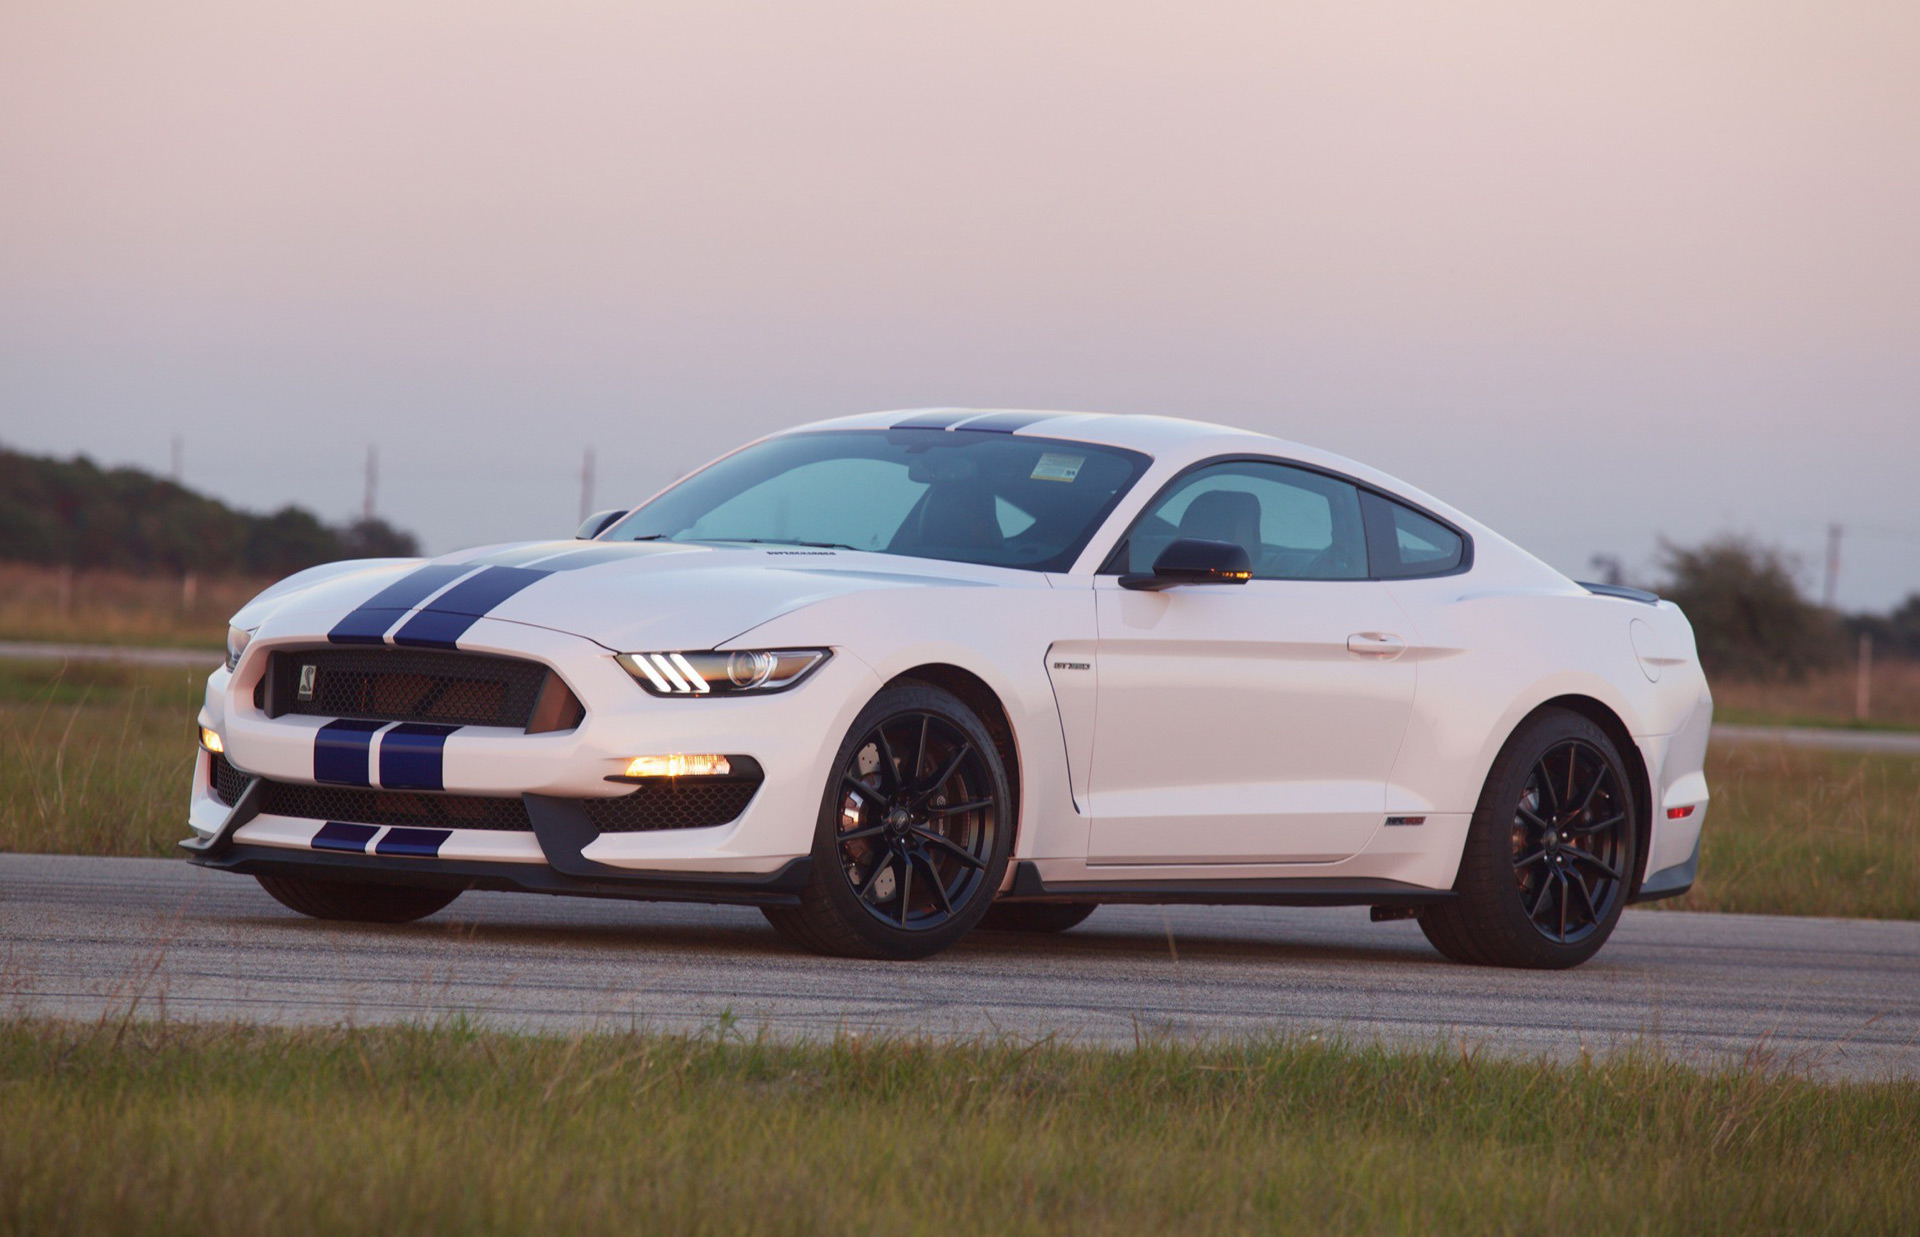 Hennessey cranks up the Mustang Shelby GT350 to 800hp